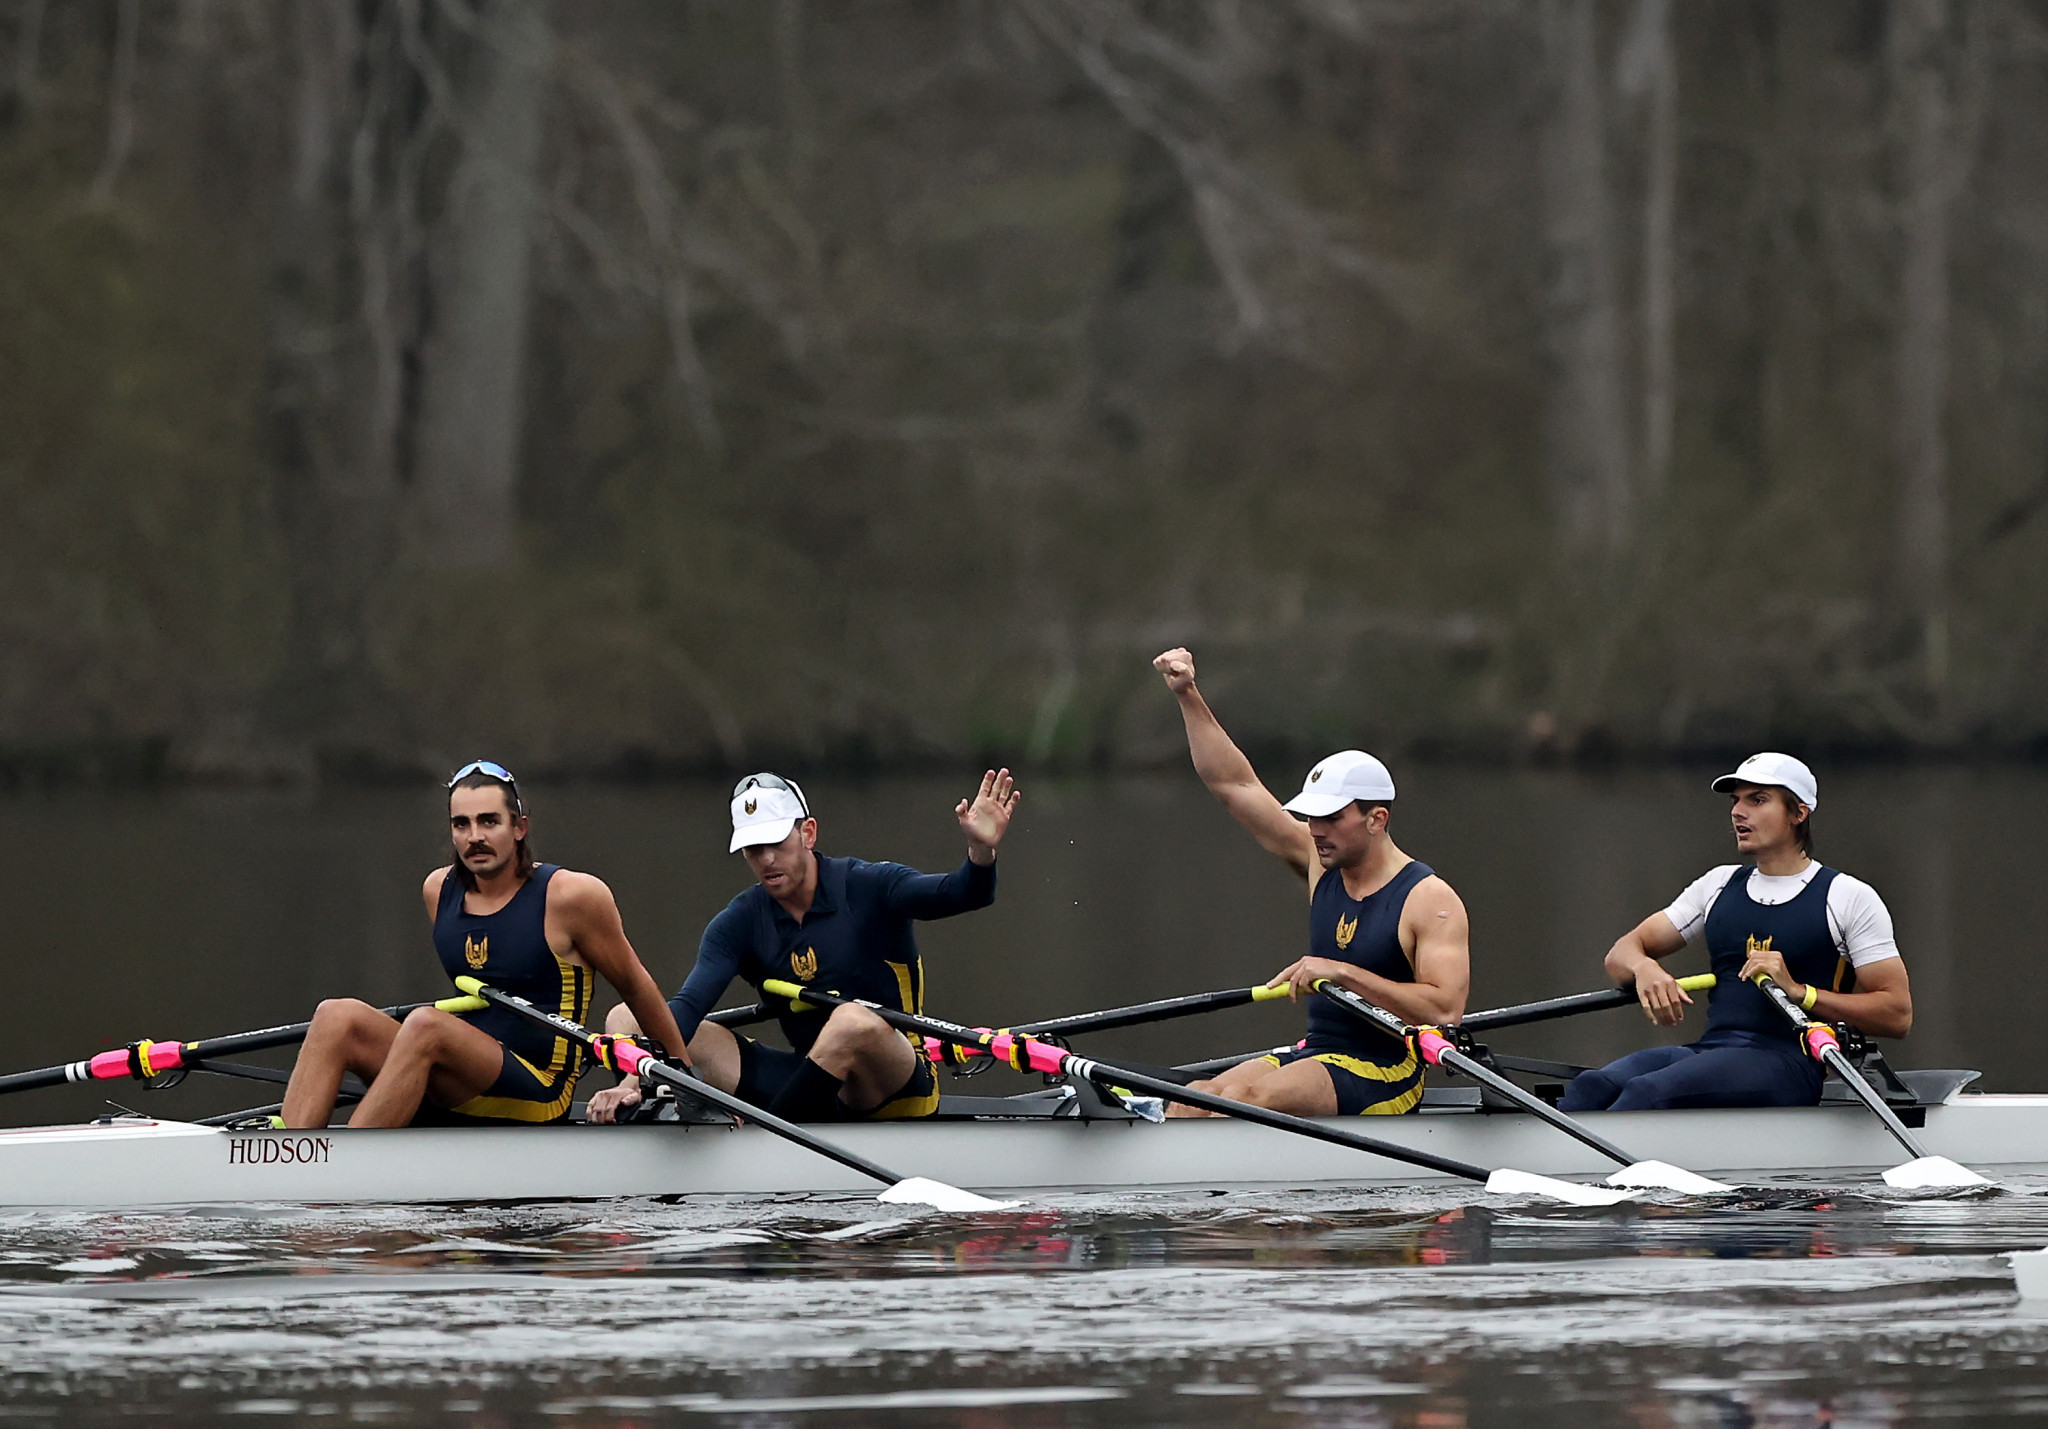 Charles Anderson, Justin Keen, Eliot Putnam and Sorin Koszyk advanced to the world qualification regatta ©Getty Images